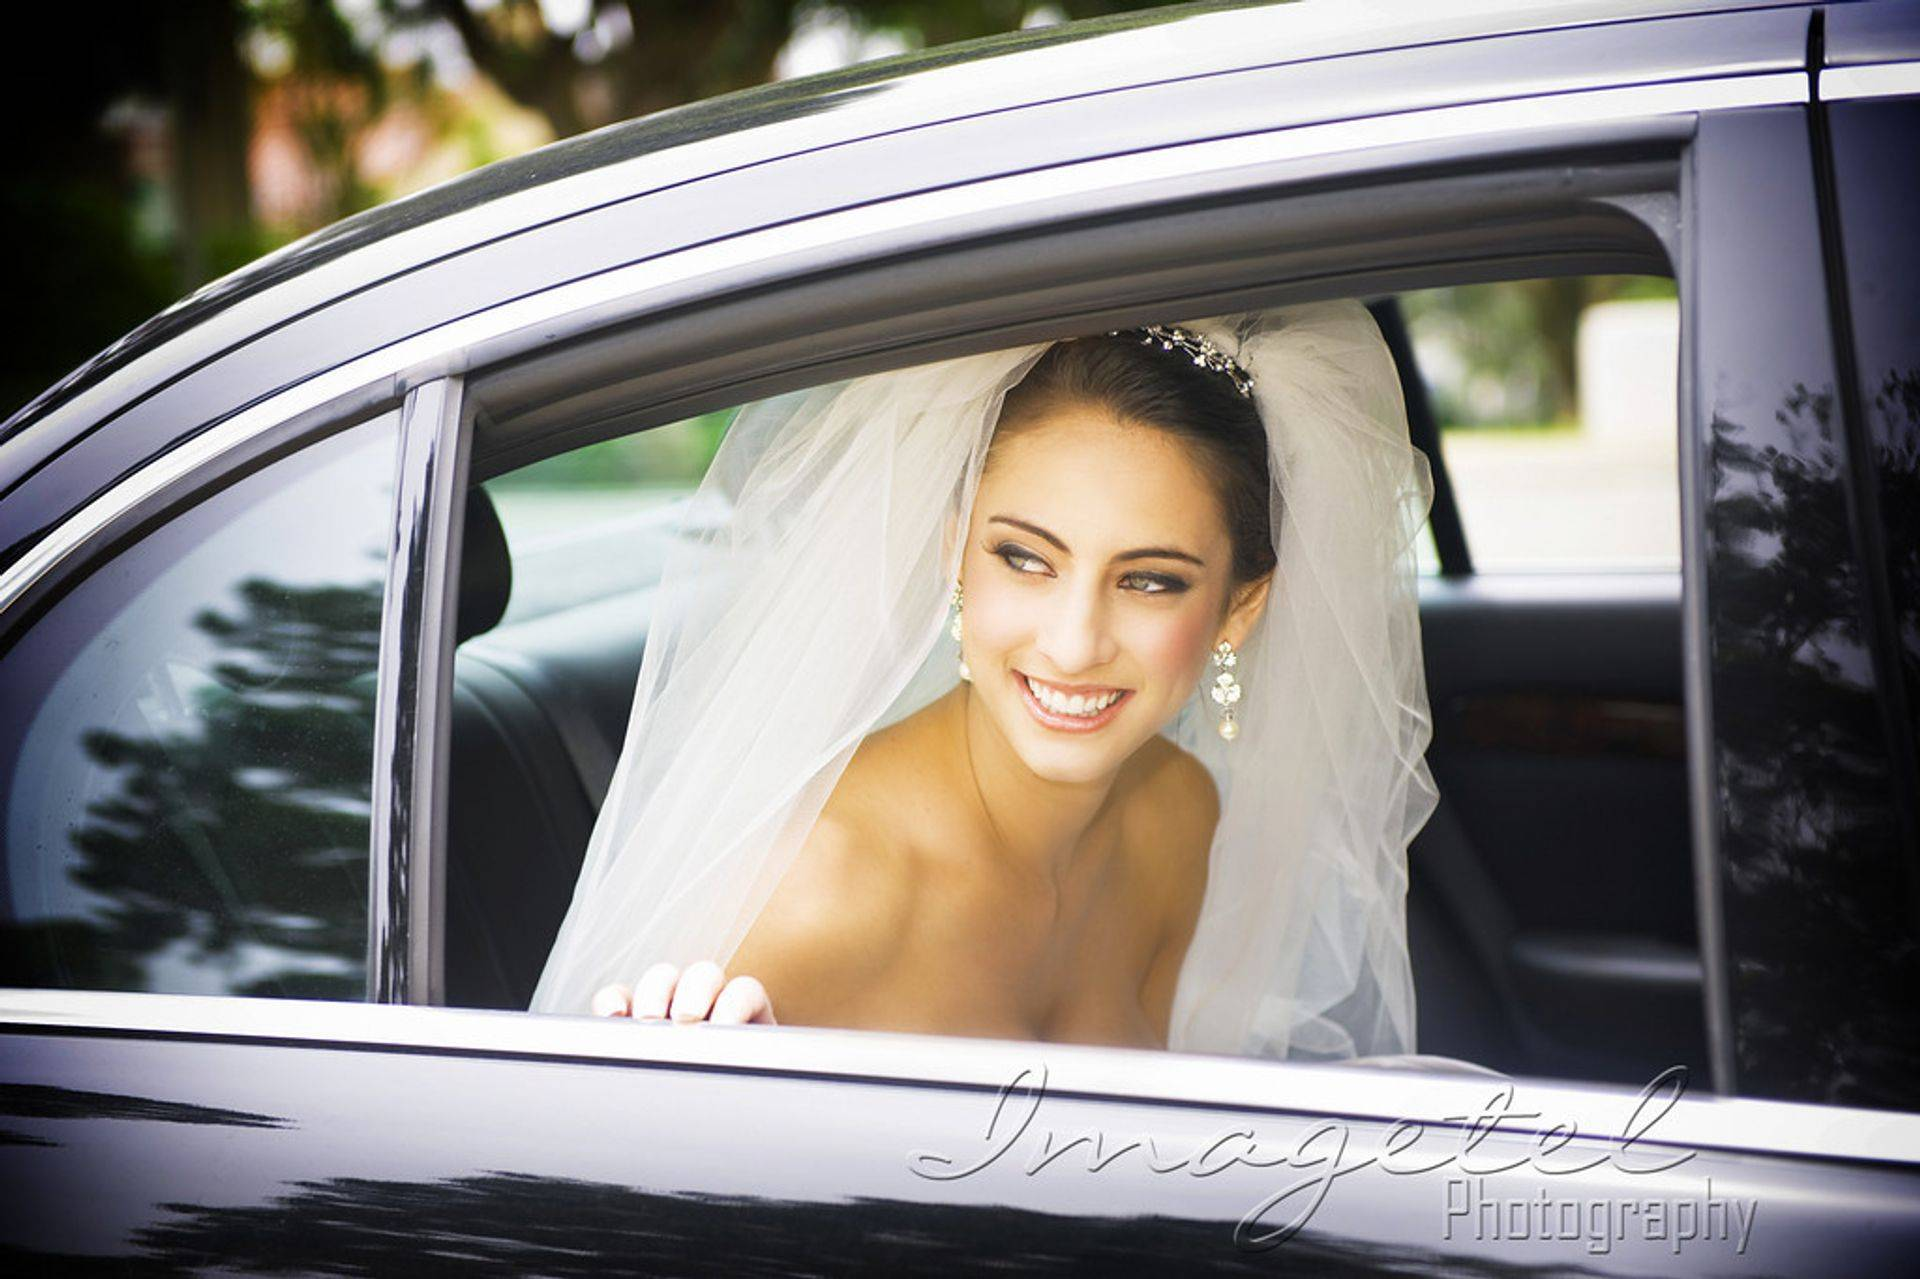 Stylish Bride and Riding in Style